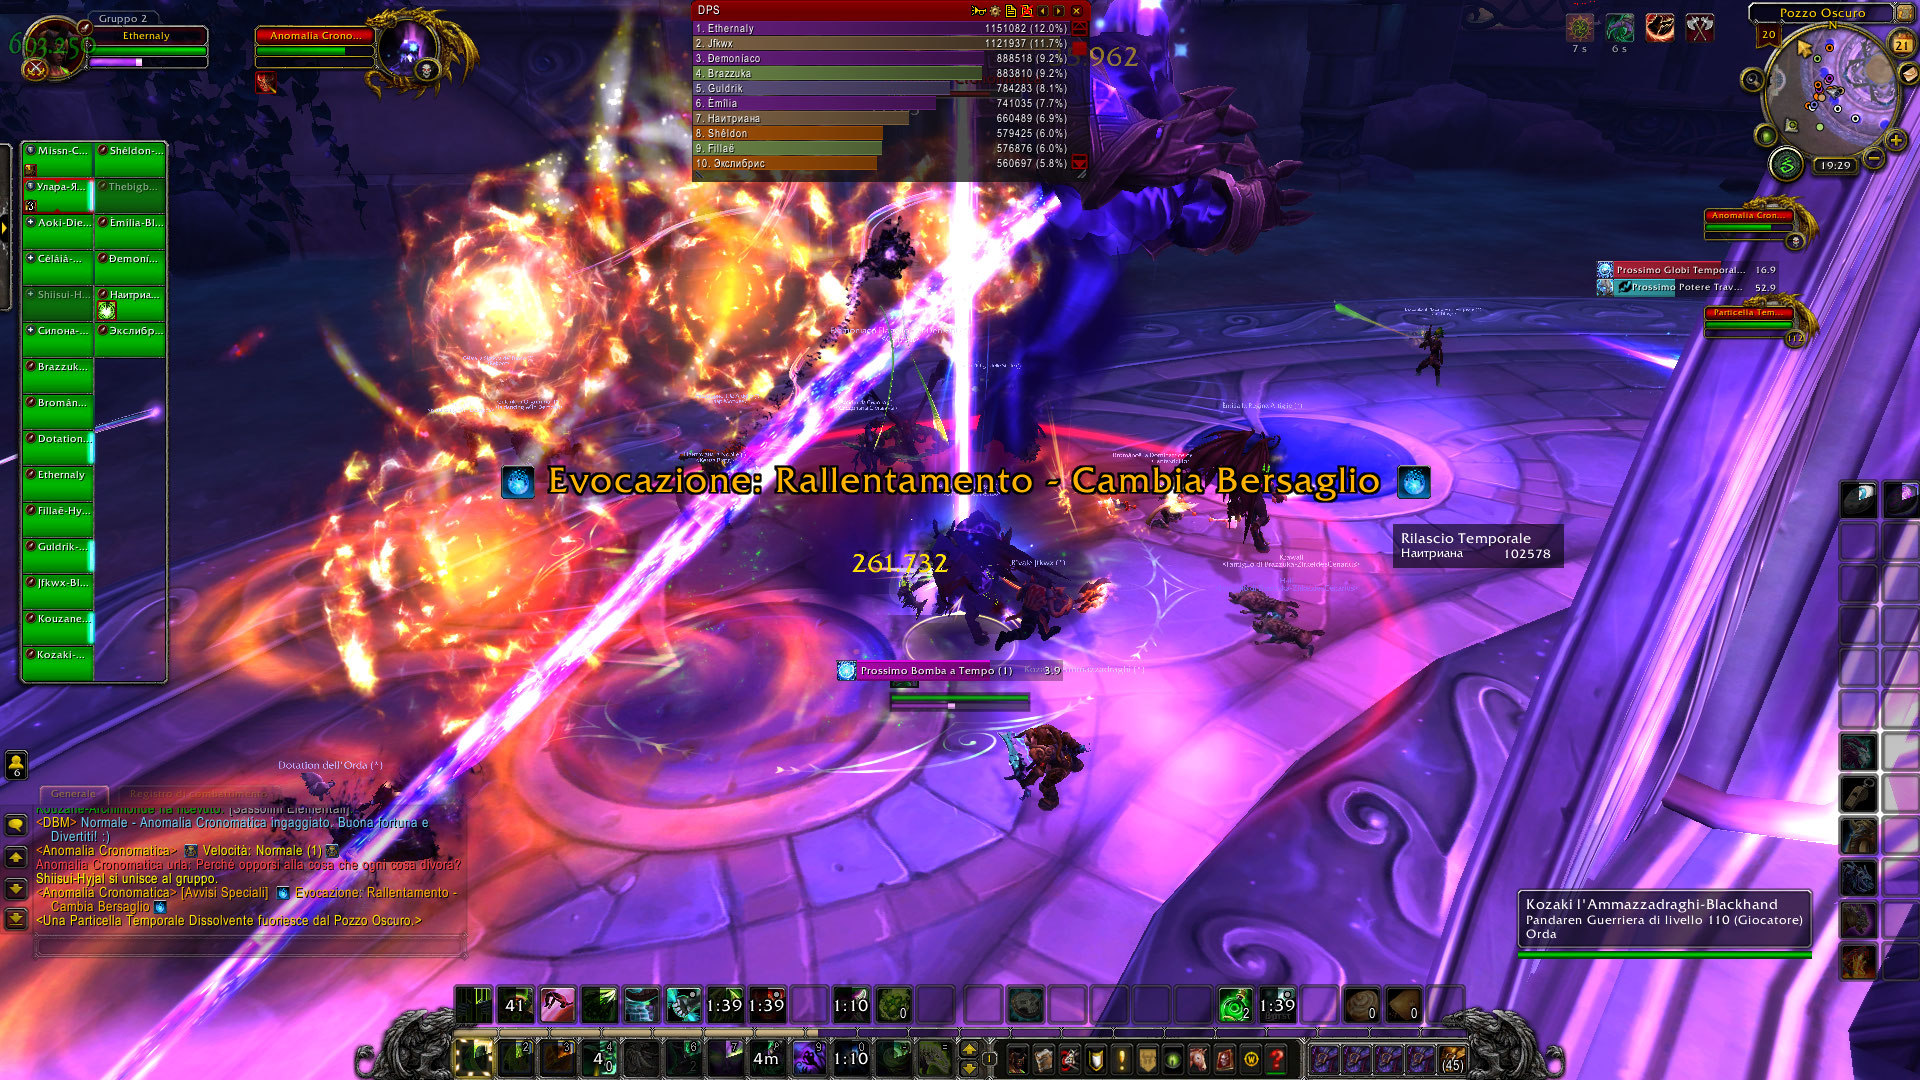 Ethernaly.it - World of Warcraft, Raid Rocca della Notte